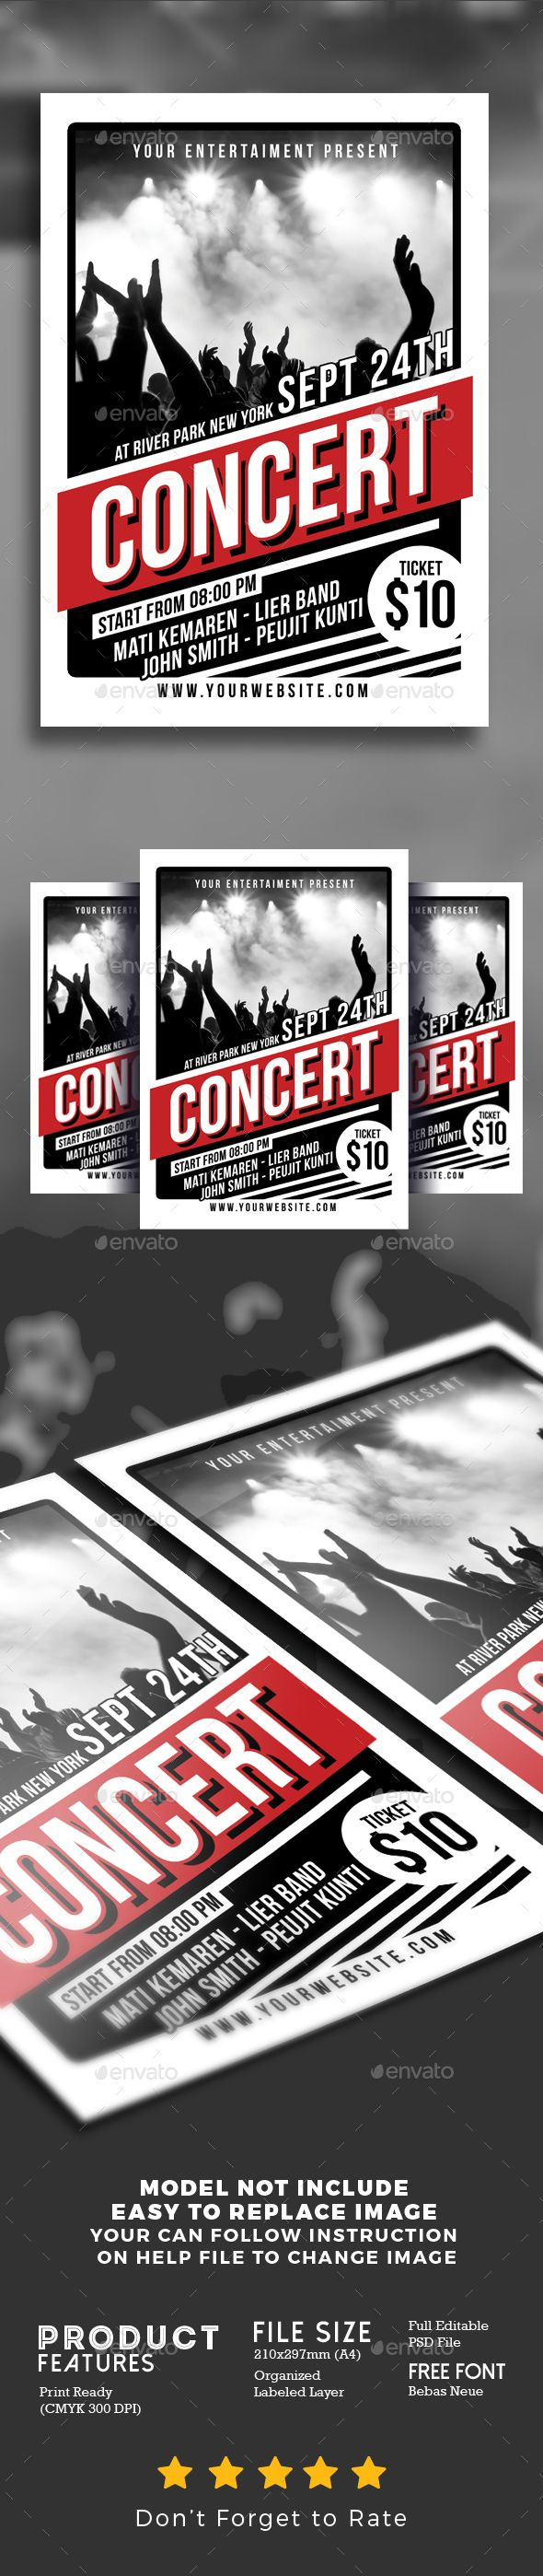 FLYER DESIGN IDEAS > Get even More from my Board: https://es.pinterest.com/analika3/flyer-ideas-flyer-design-inspiration/ Music Concert Flyer Poster Template PSD _ Great inspiration for graphic designers in need of music concert flyer poster templates ;)